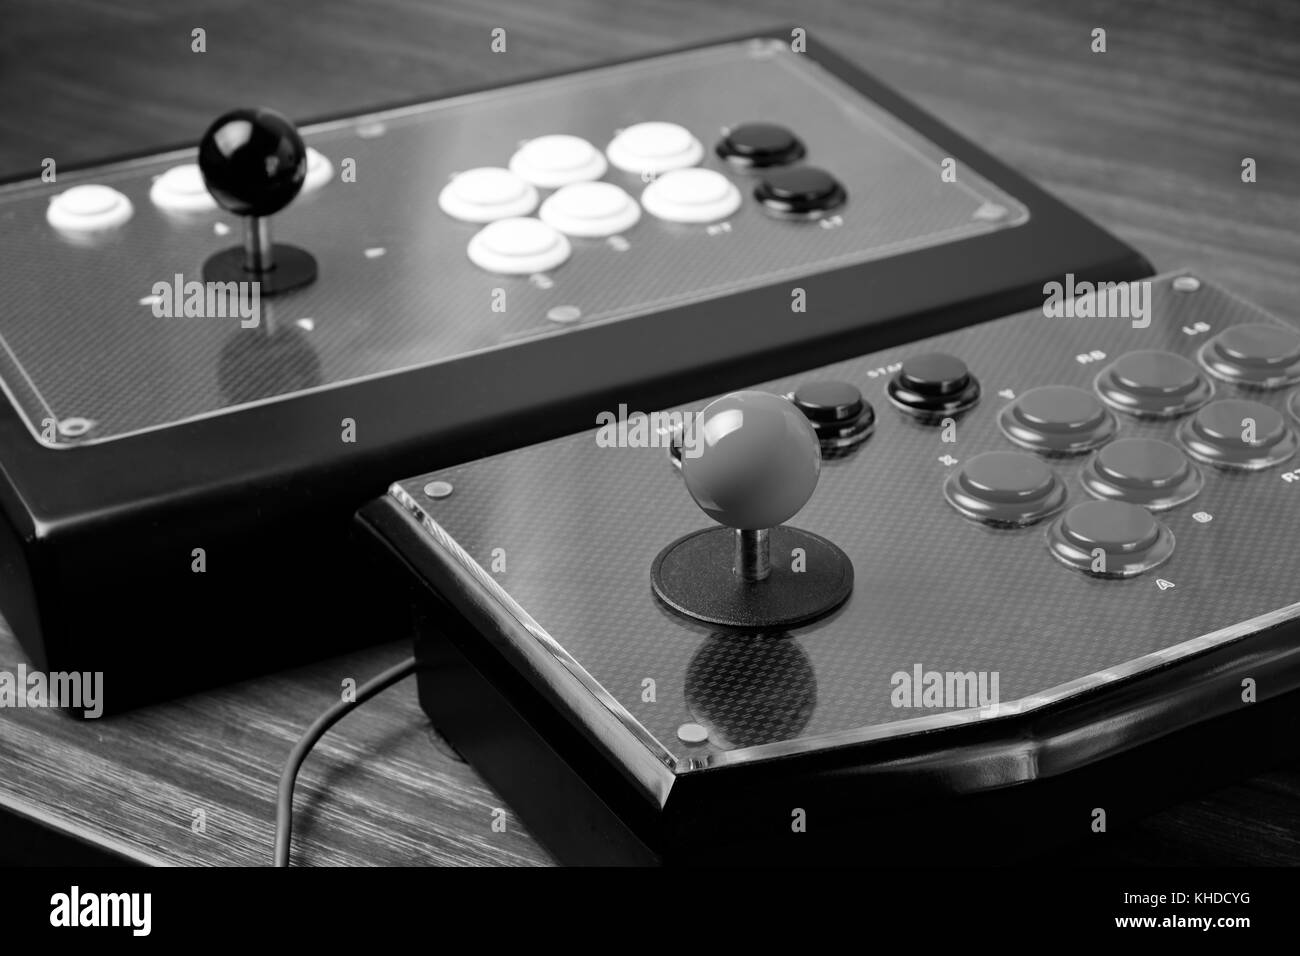 Real Arcade Joystick on Wood table (Black and white) - Stock Image